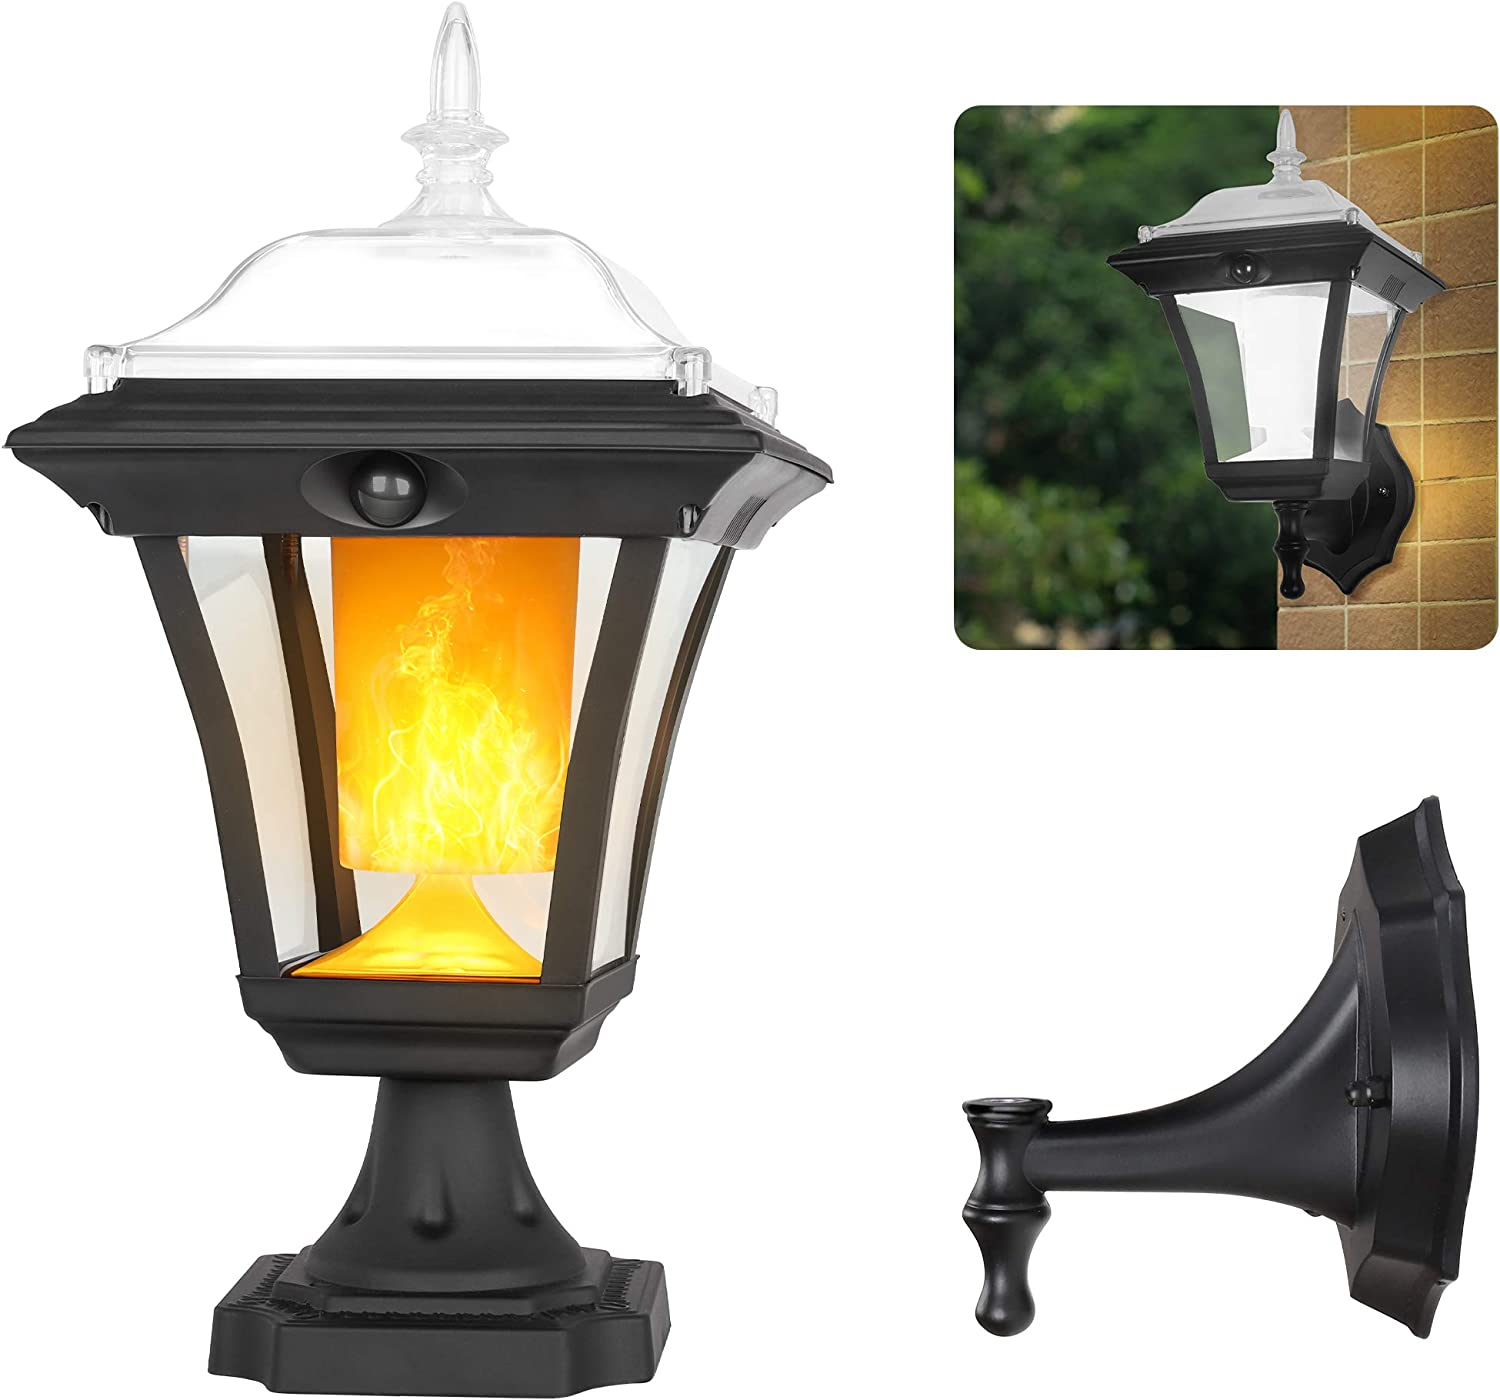 Solar Light Outdoor, Flickering Flame Wall Light Fixture, 2-in-1 Motion Sensor Post Light Porch Light, Dusk to Dawn Auto ON/Off, Waterproof, Landscape Deck Light for Garden Patio Doorway, 1 Pack